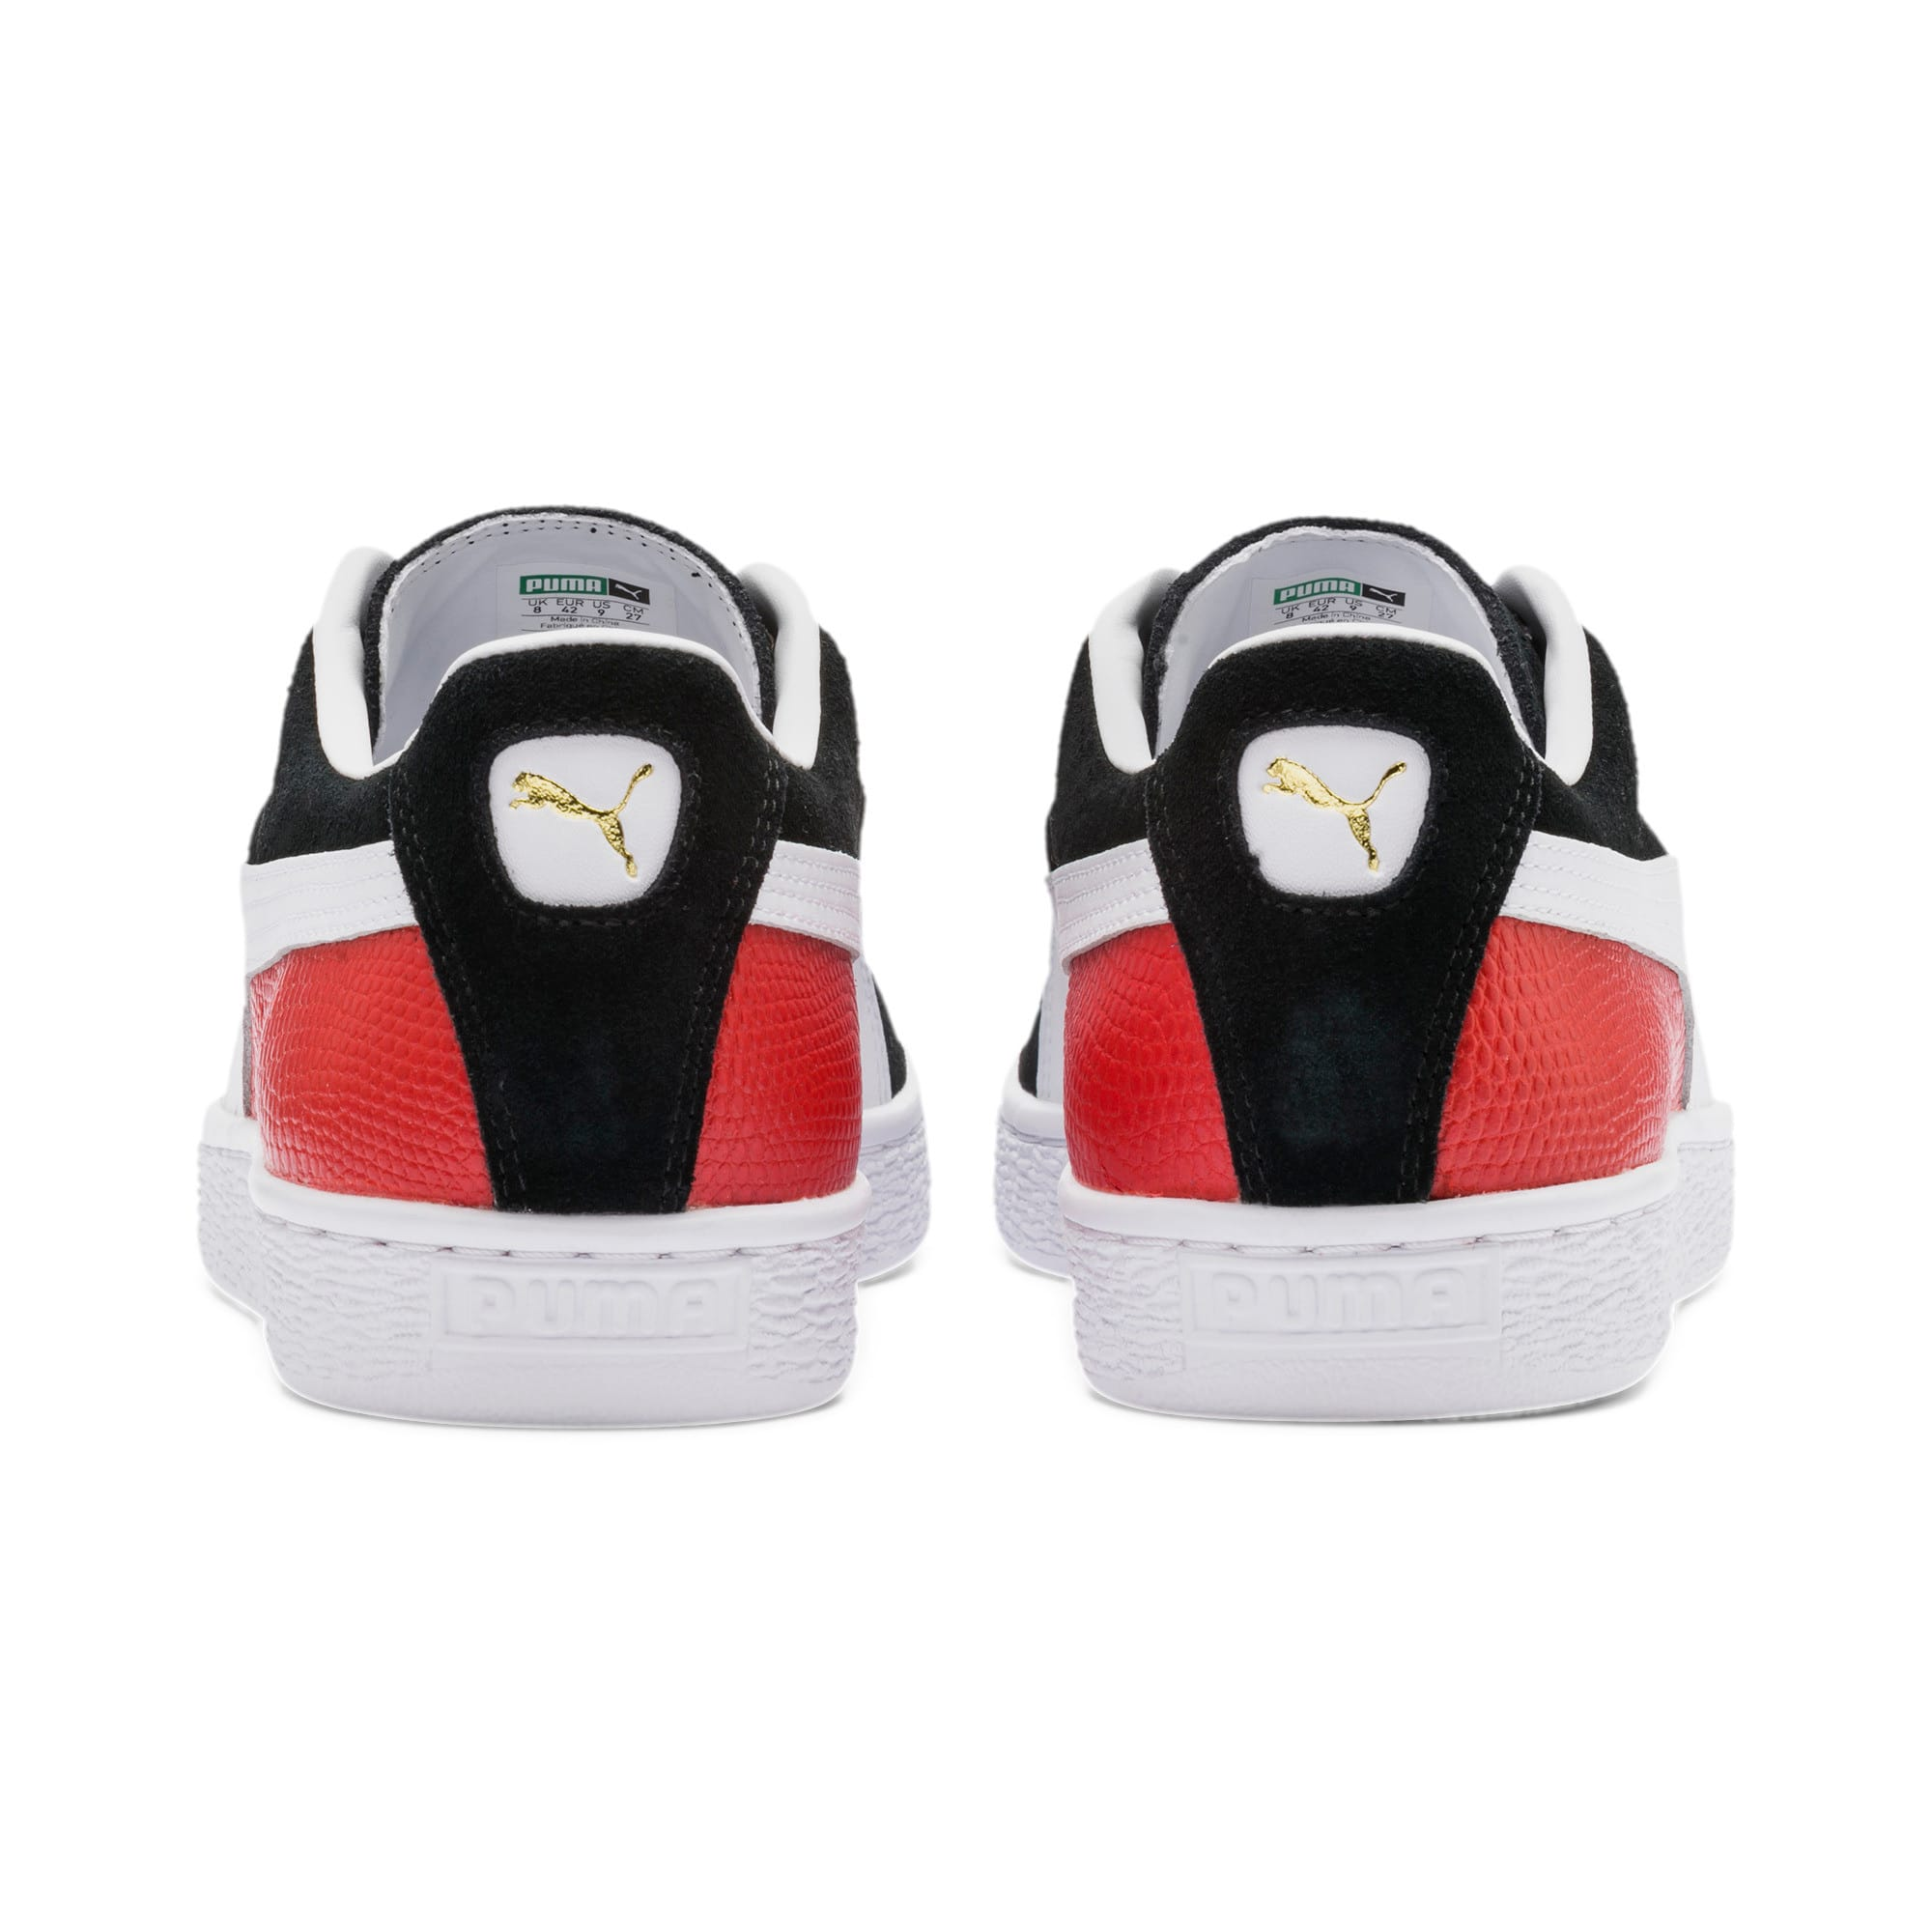 Thumbnail 5 of Suede Classic Block Sneakers, Black-High Risk Red-White, medium